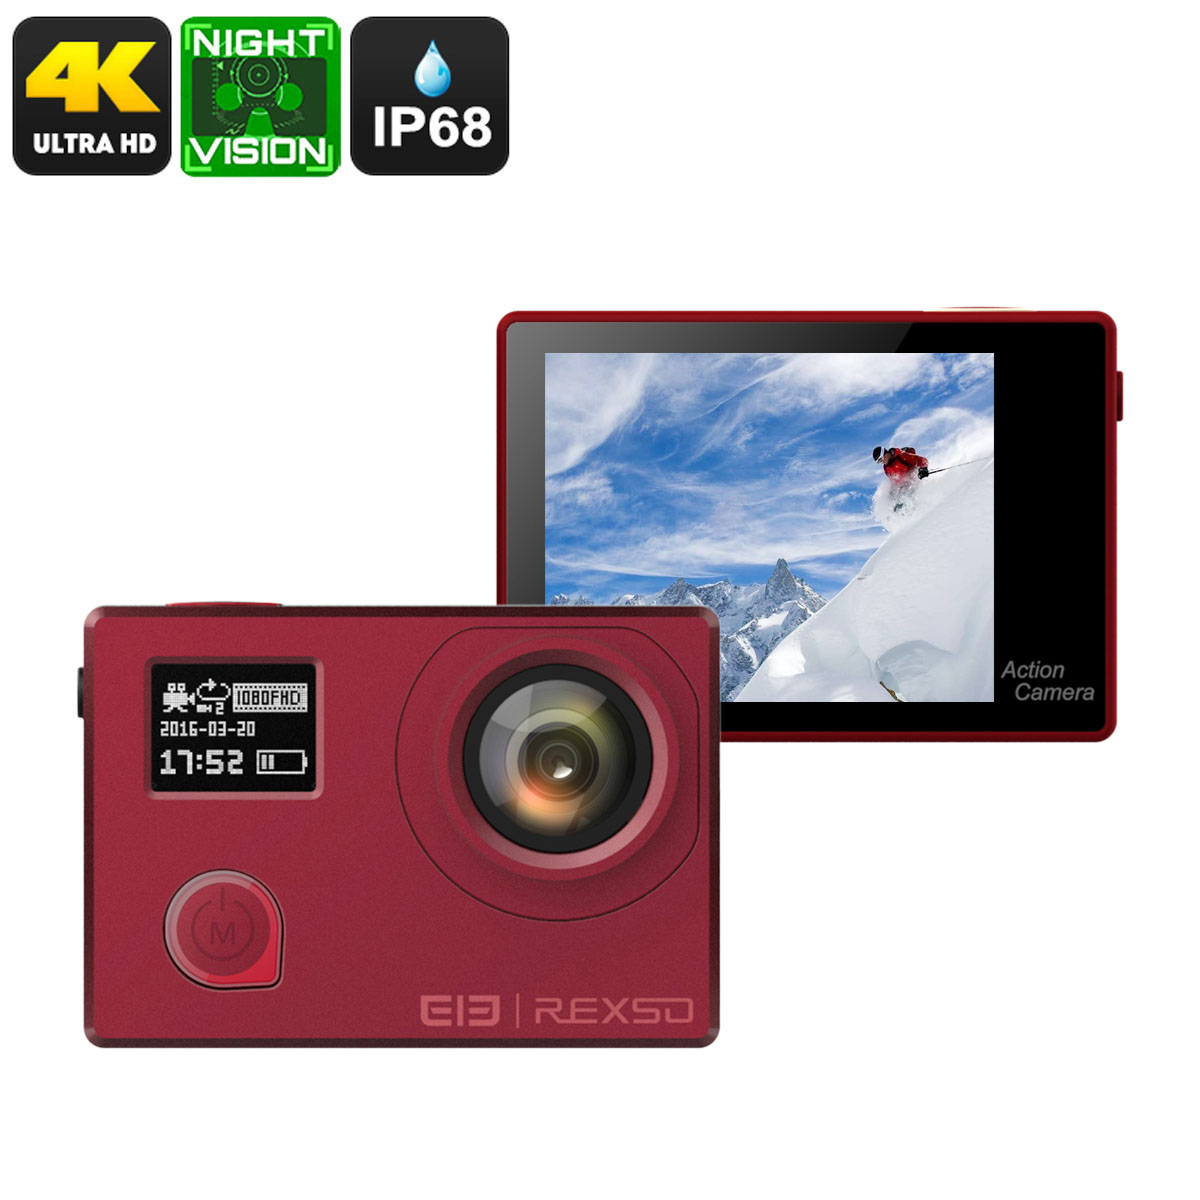 Elephone REXSO Explorer 4K Action Camera - Sony IMAX Sensor, Night Vision, IP68, Dual-Display, 4K, 16MP Picture (Red)